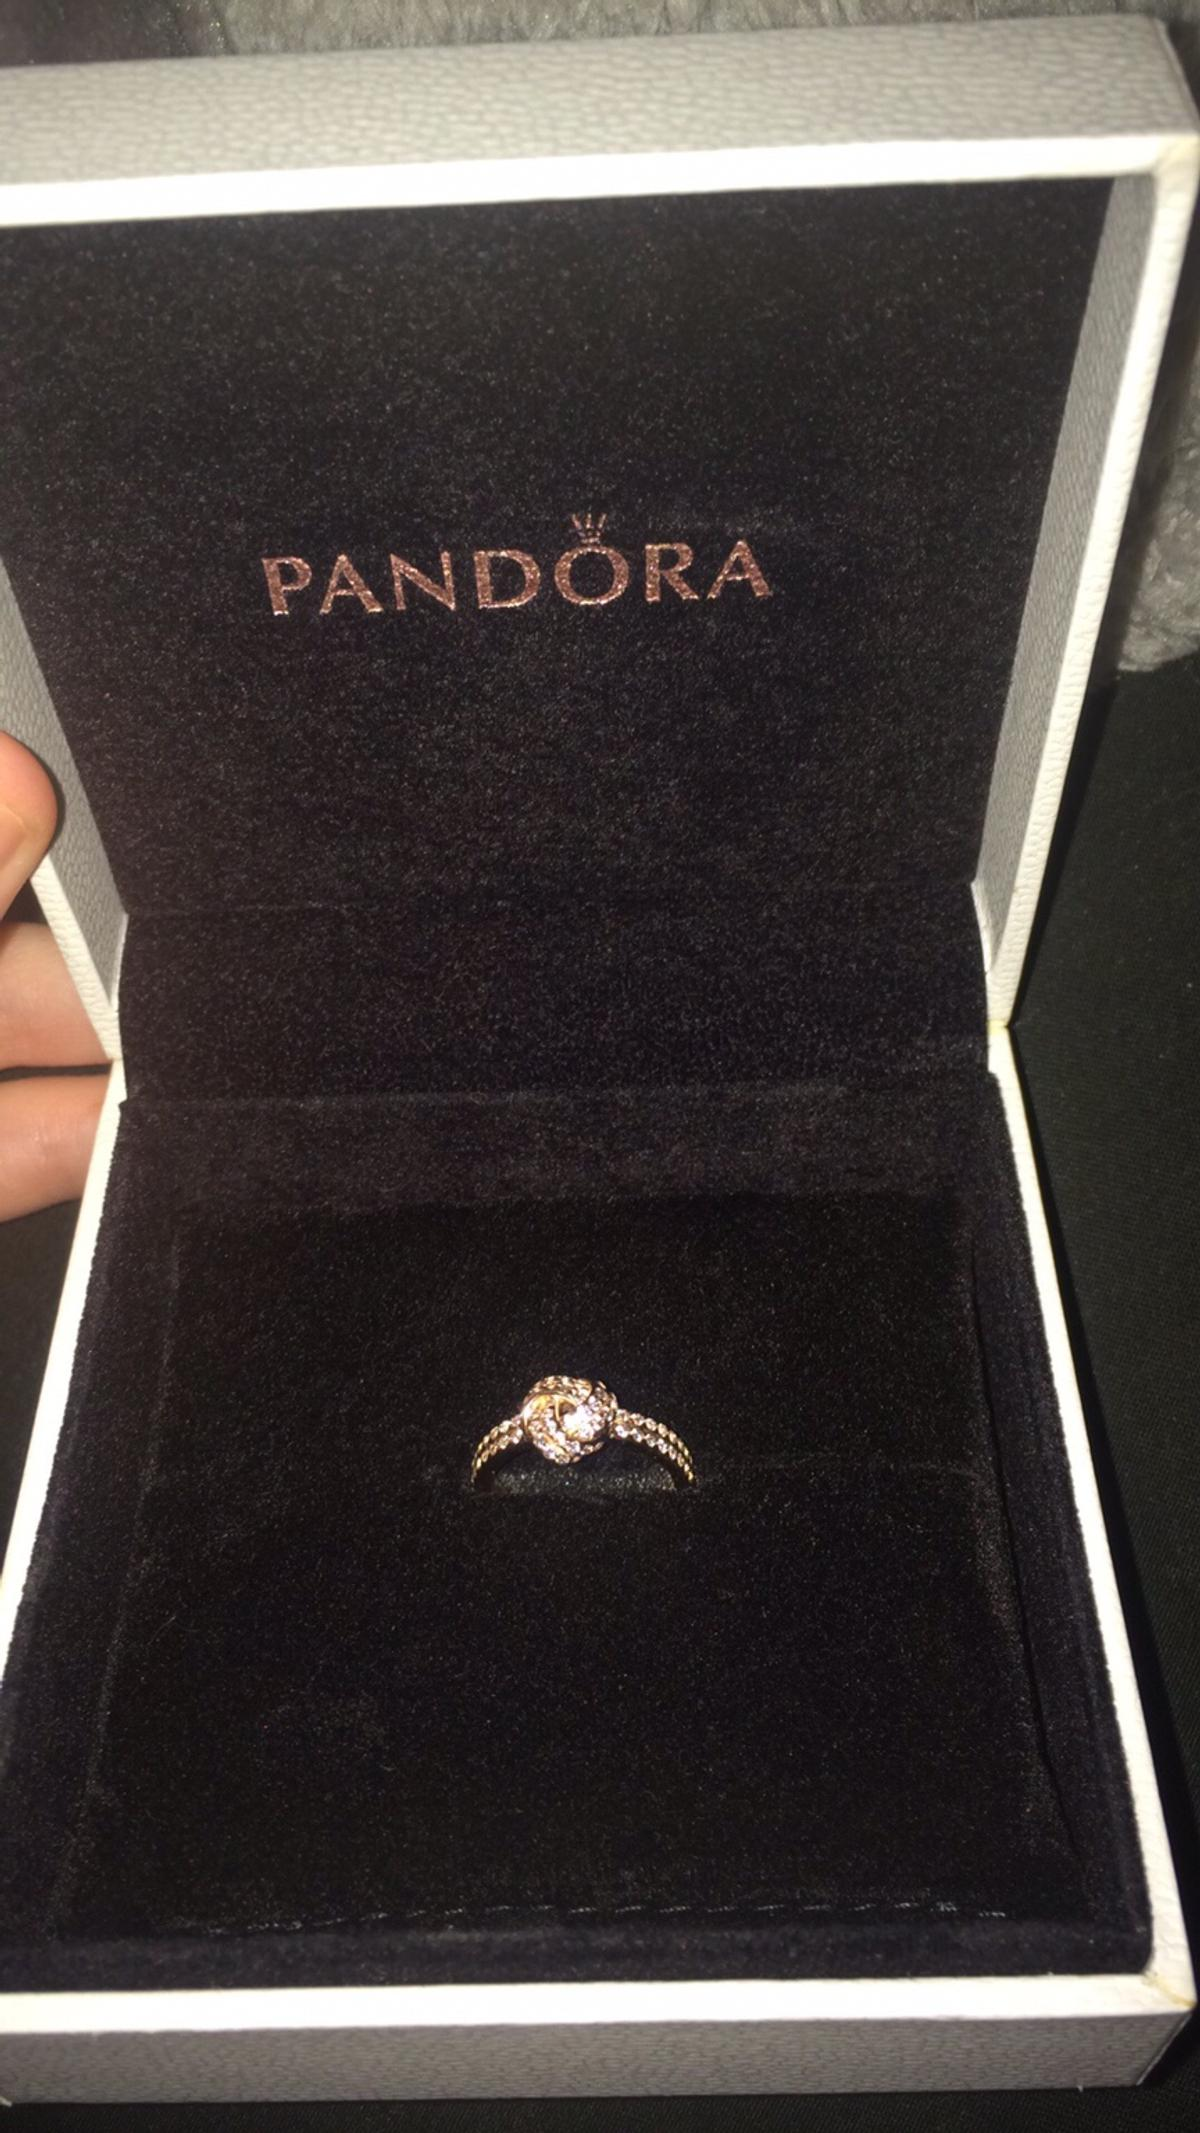 Pandora Rose Gold Shimmering Knot Ring In Sy1 Shrewsbury For 45 00 For Sale Shpock